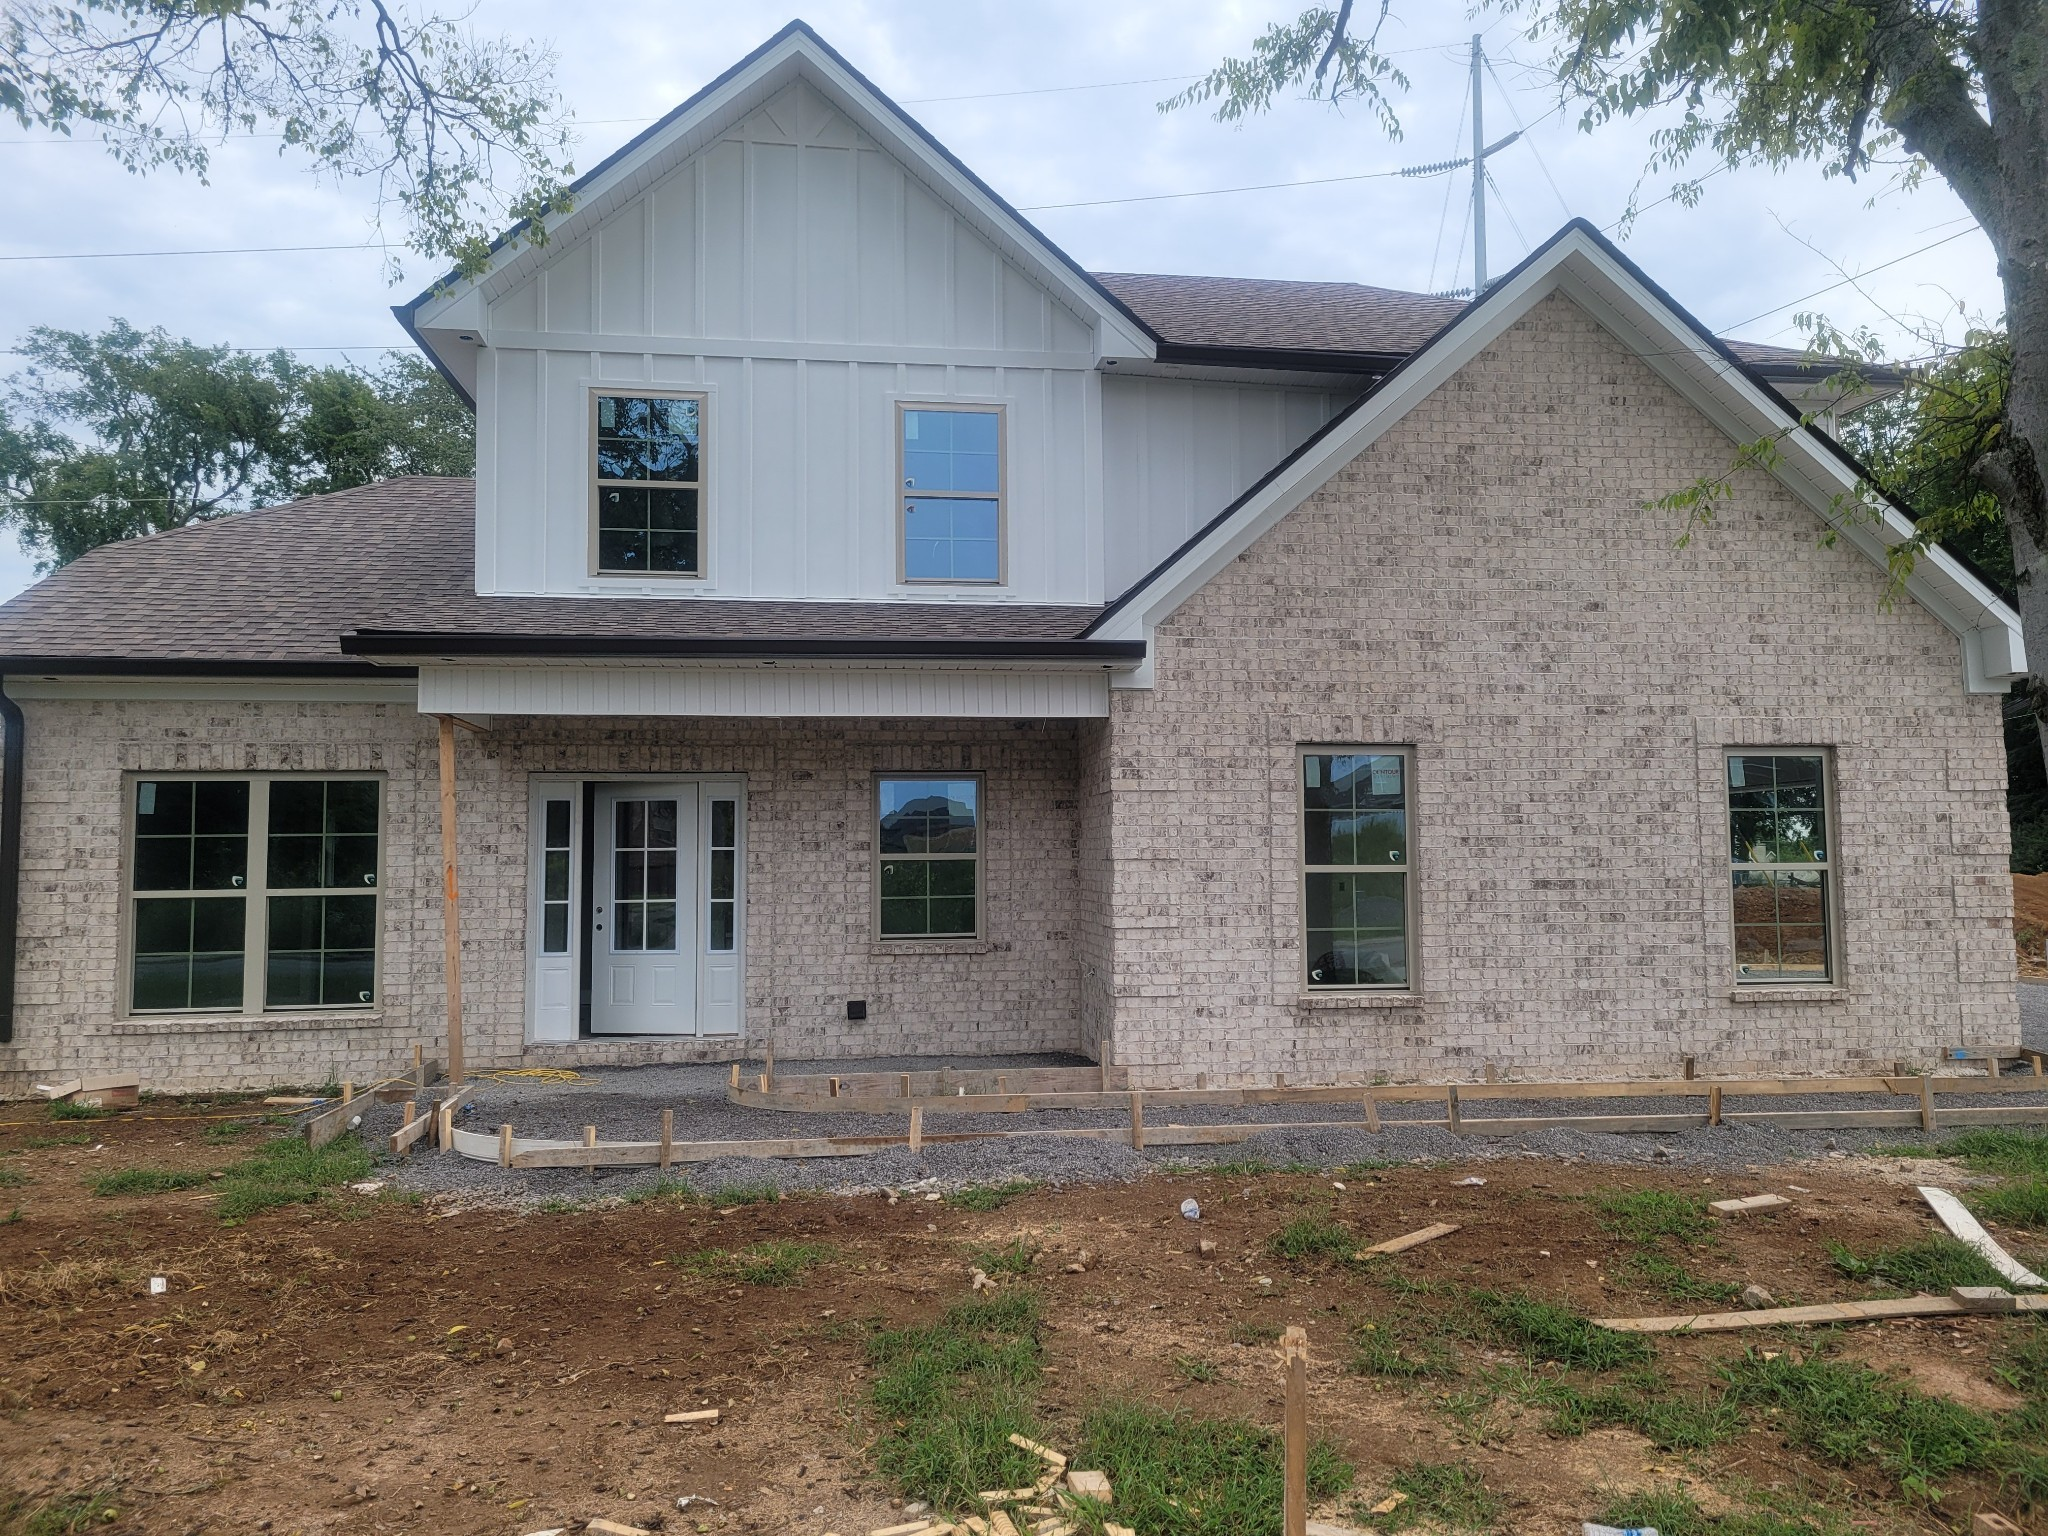 New brick home conveniently located minutes from I-24, Nissan, schools. and more, SS appliances, lam hardwood, tile floor, fireplace, open floor plan, lg walk-in-closet, nice size bonus area, covered back patio...Beautiful Home!!!!